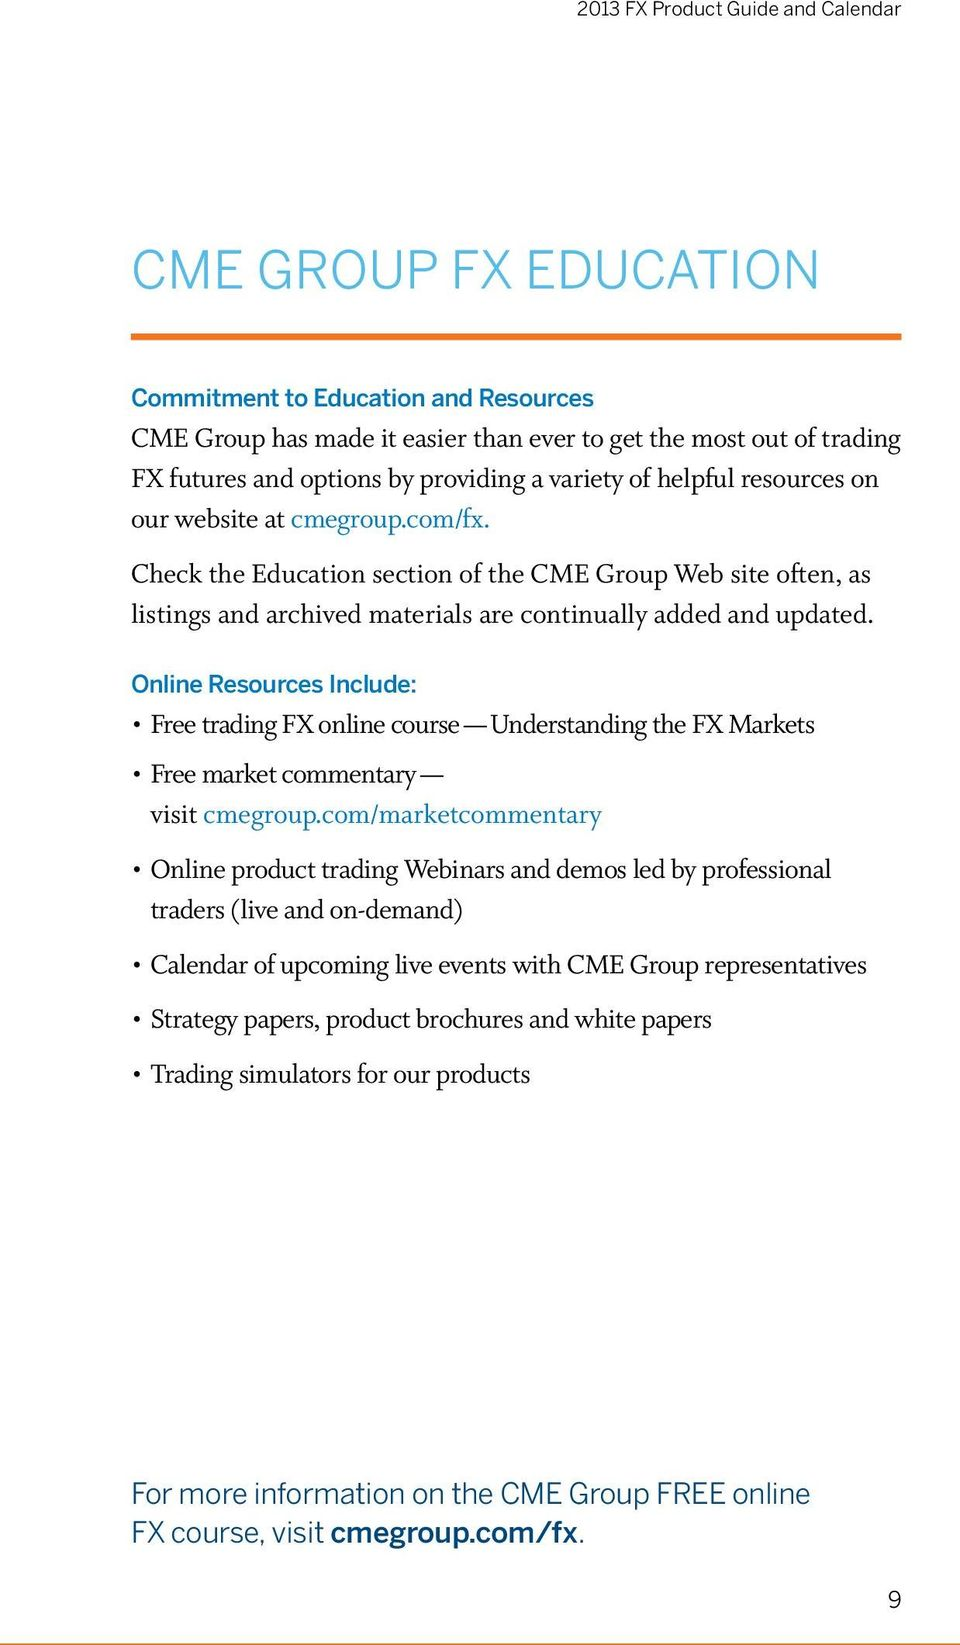 Check the Education section of the CME Group Web site often, as listings and archived materials are continually added and updated.